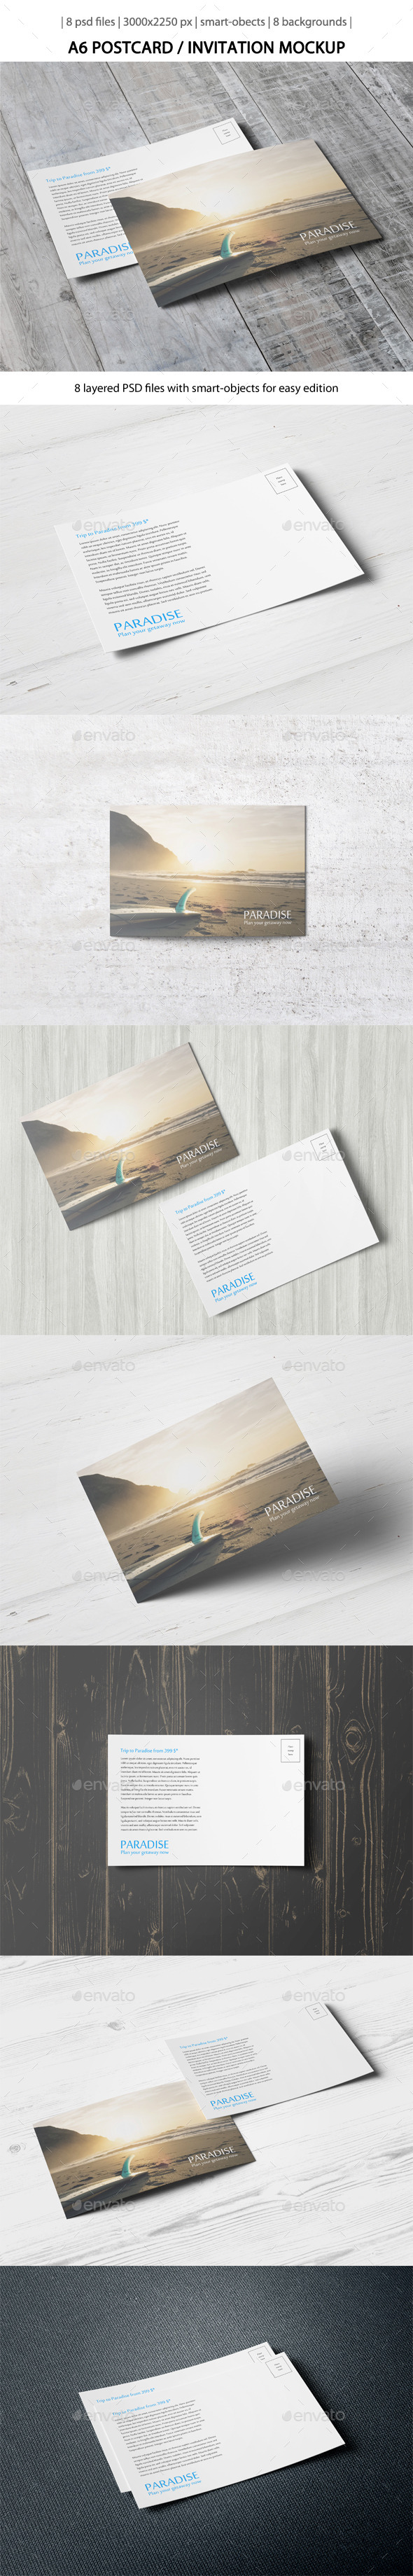 GraphicRiver Postcard Invitation Mock-Up [A6] 10799810